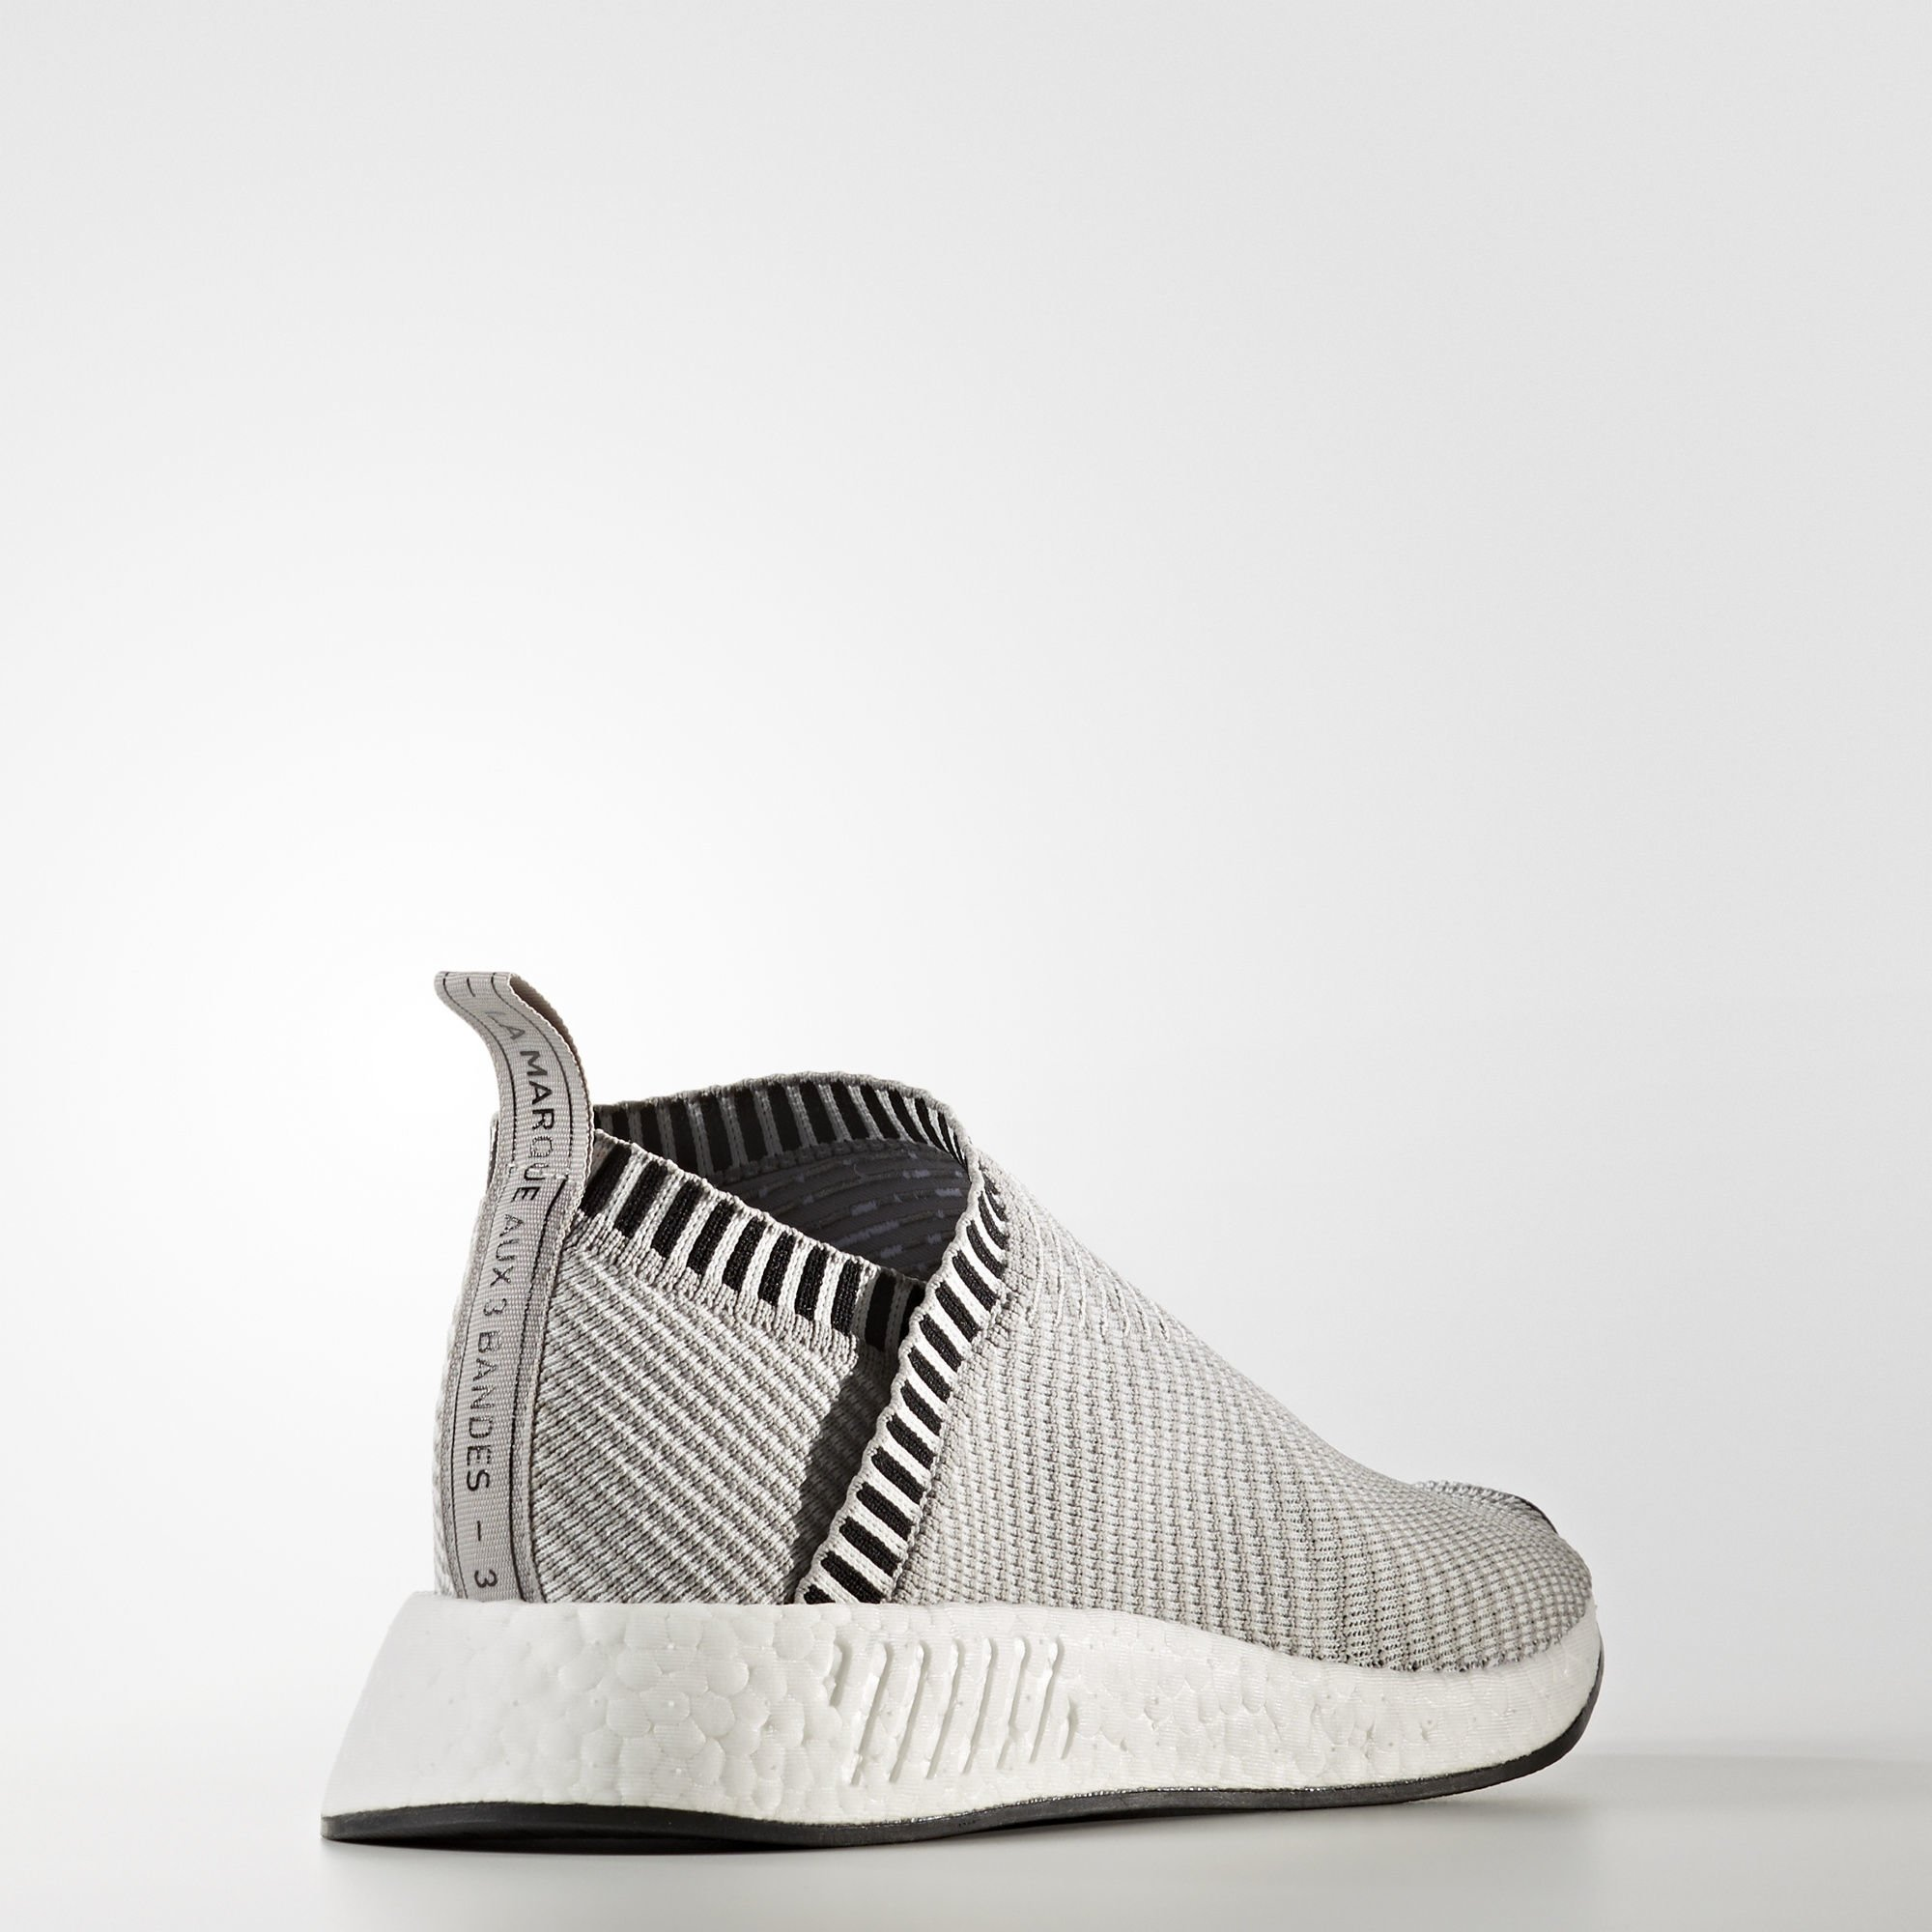 adidas NMD CS2 Grey Purple (BA7187)